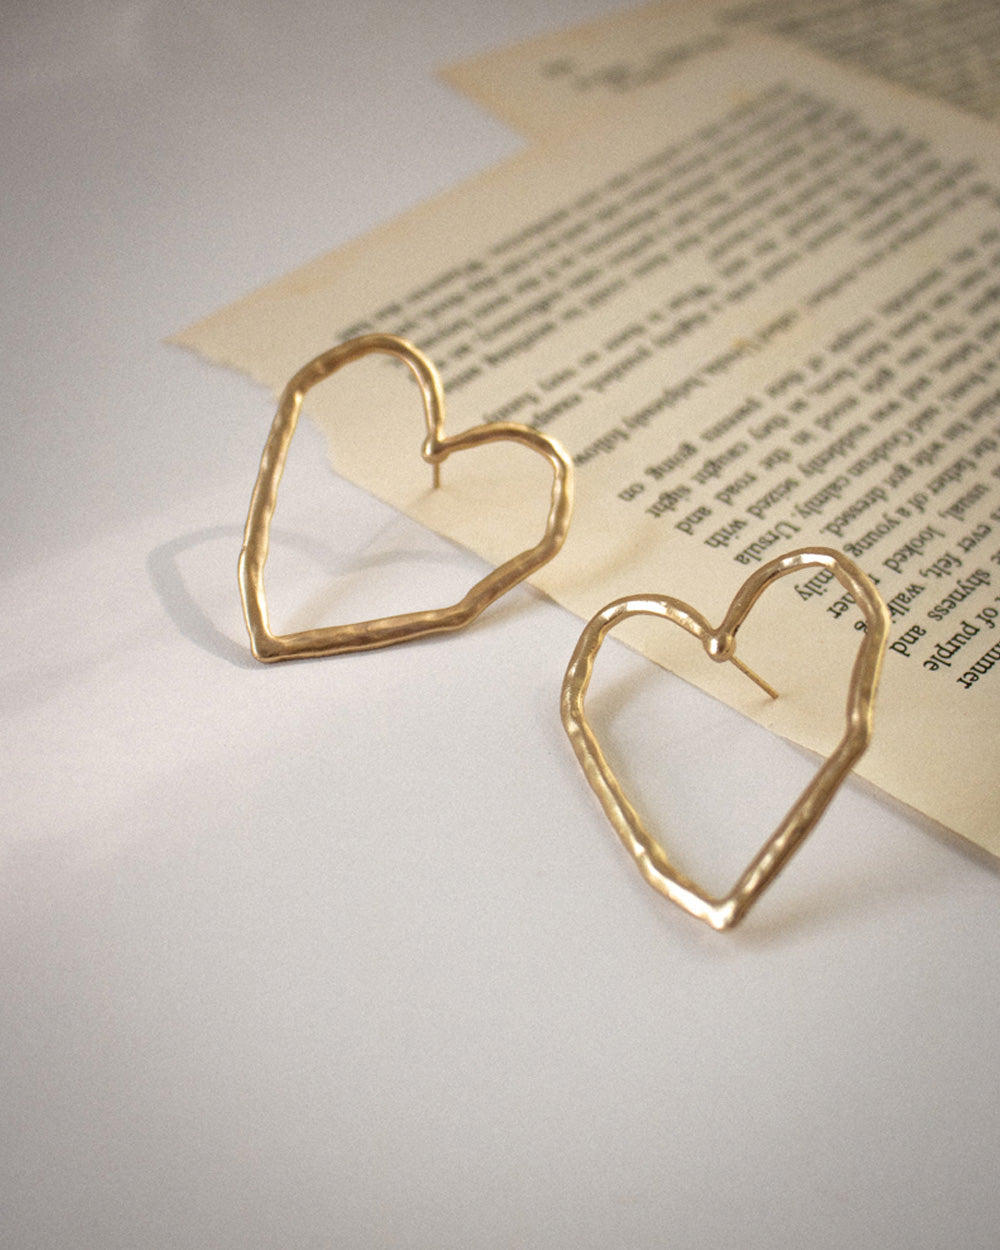 Scribble heart earrings in gold by TheHexad